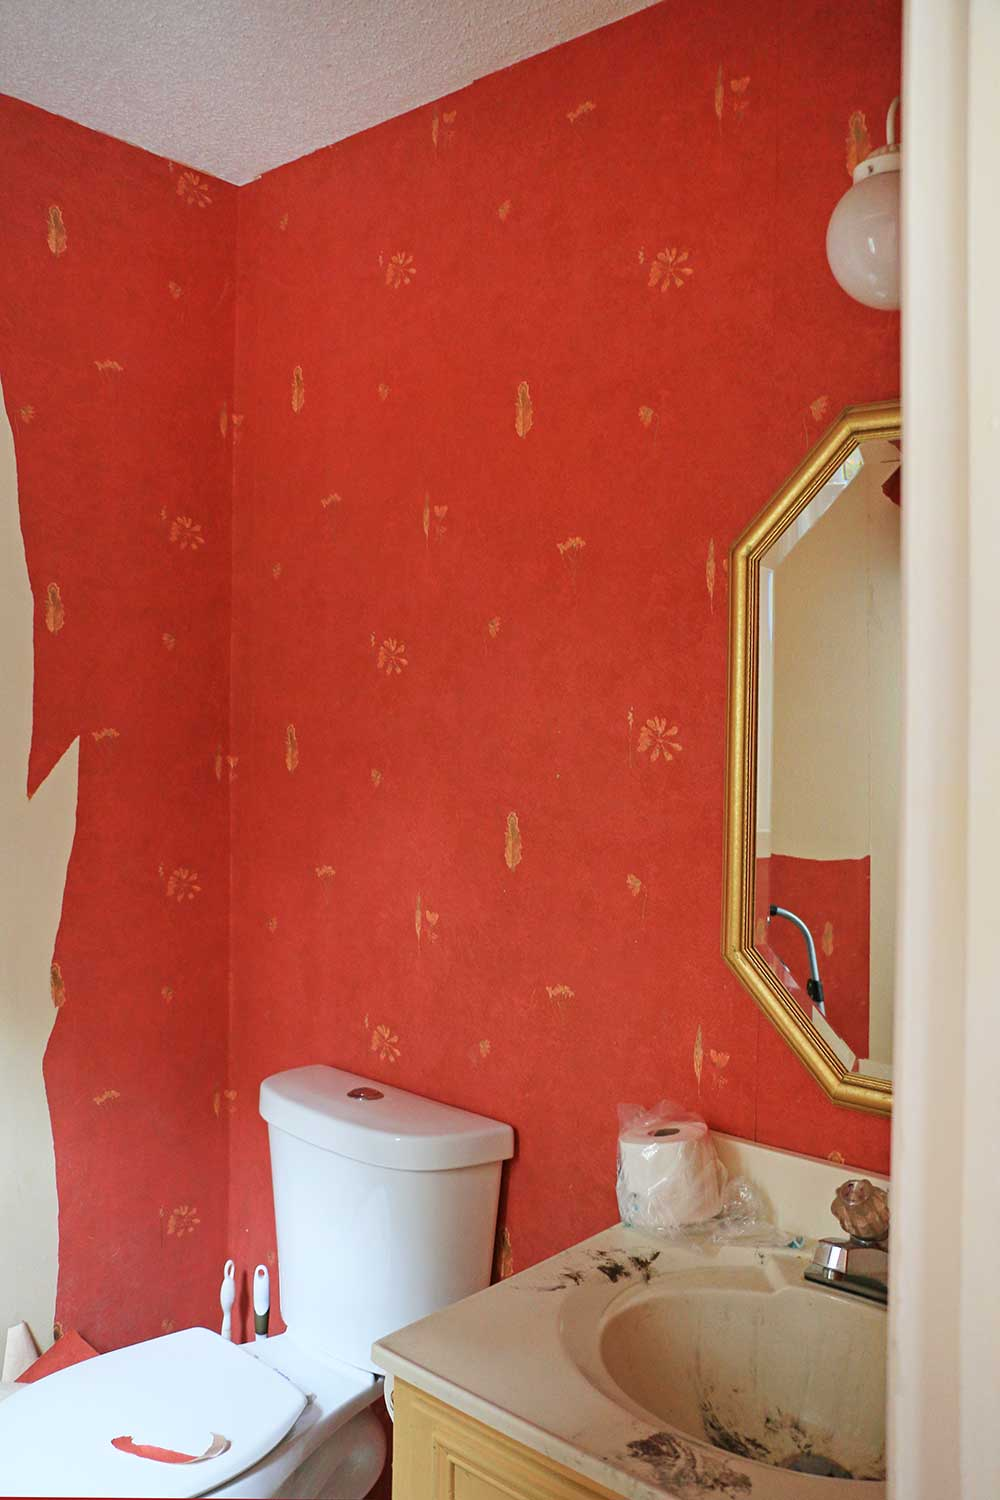 Red-wall-paper-in-a-bathroom